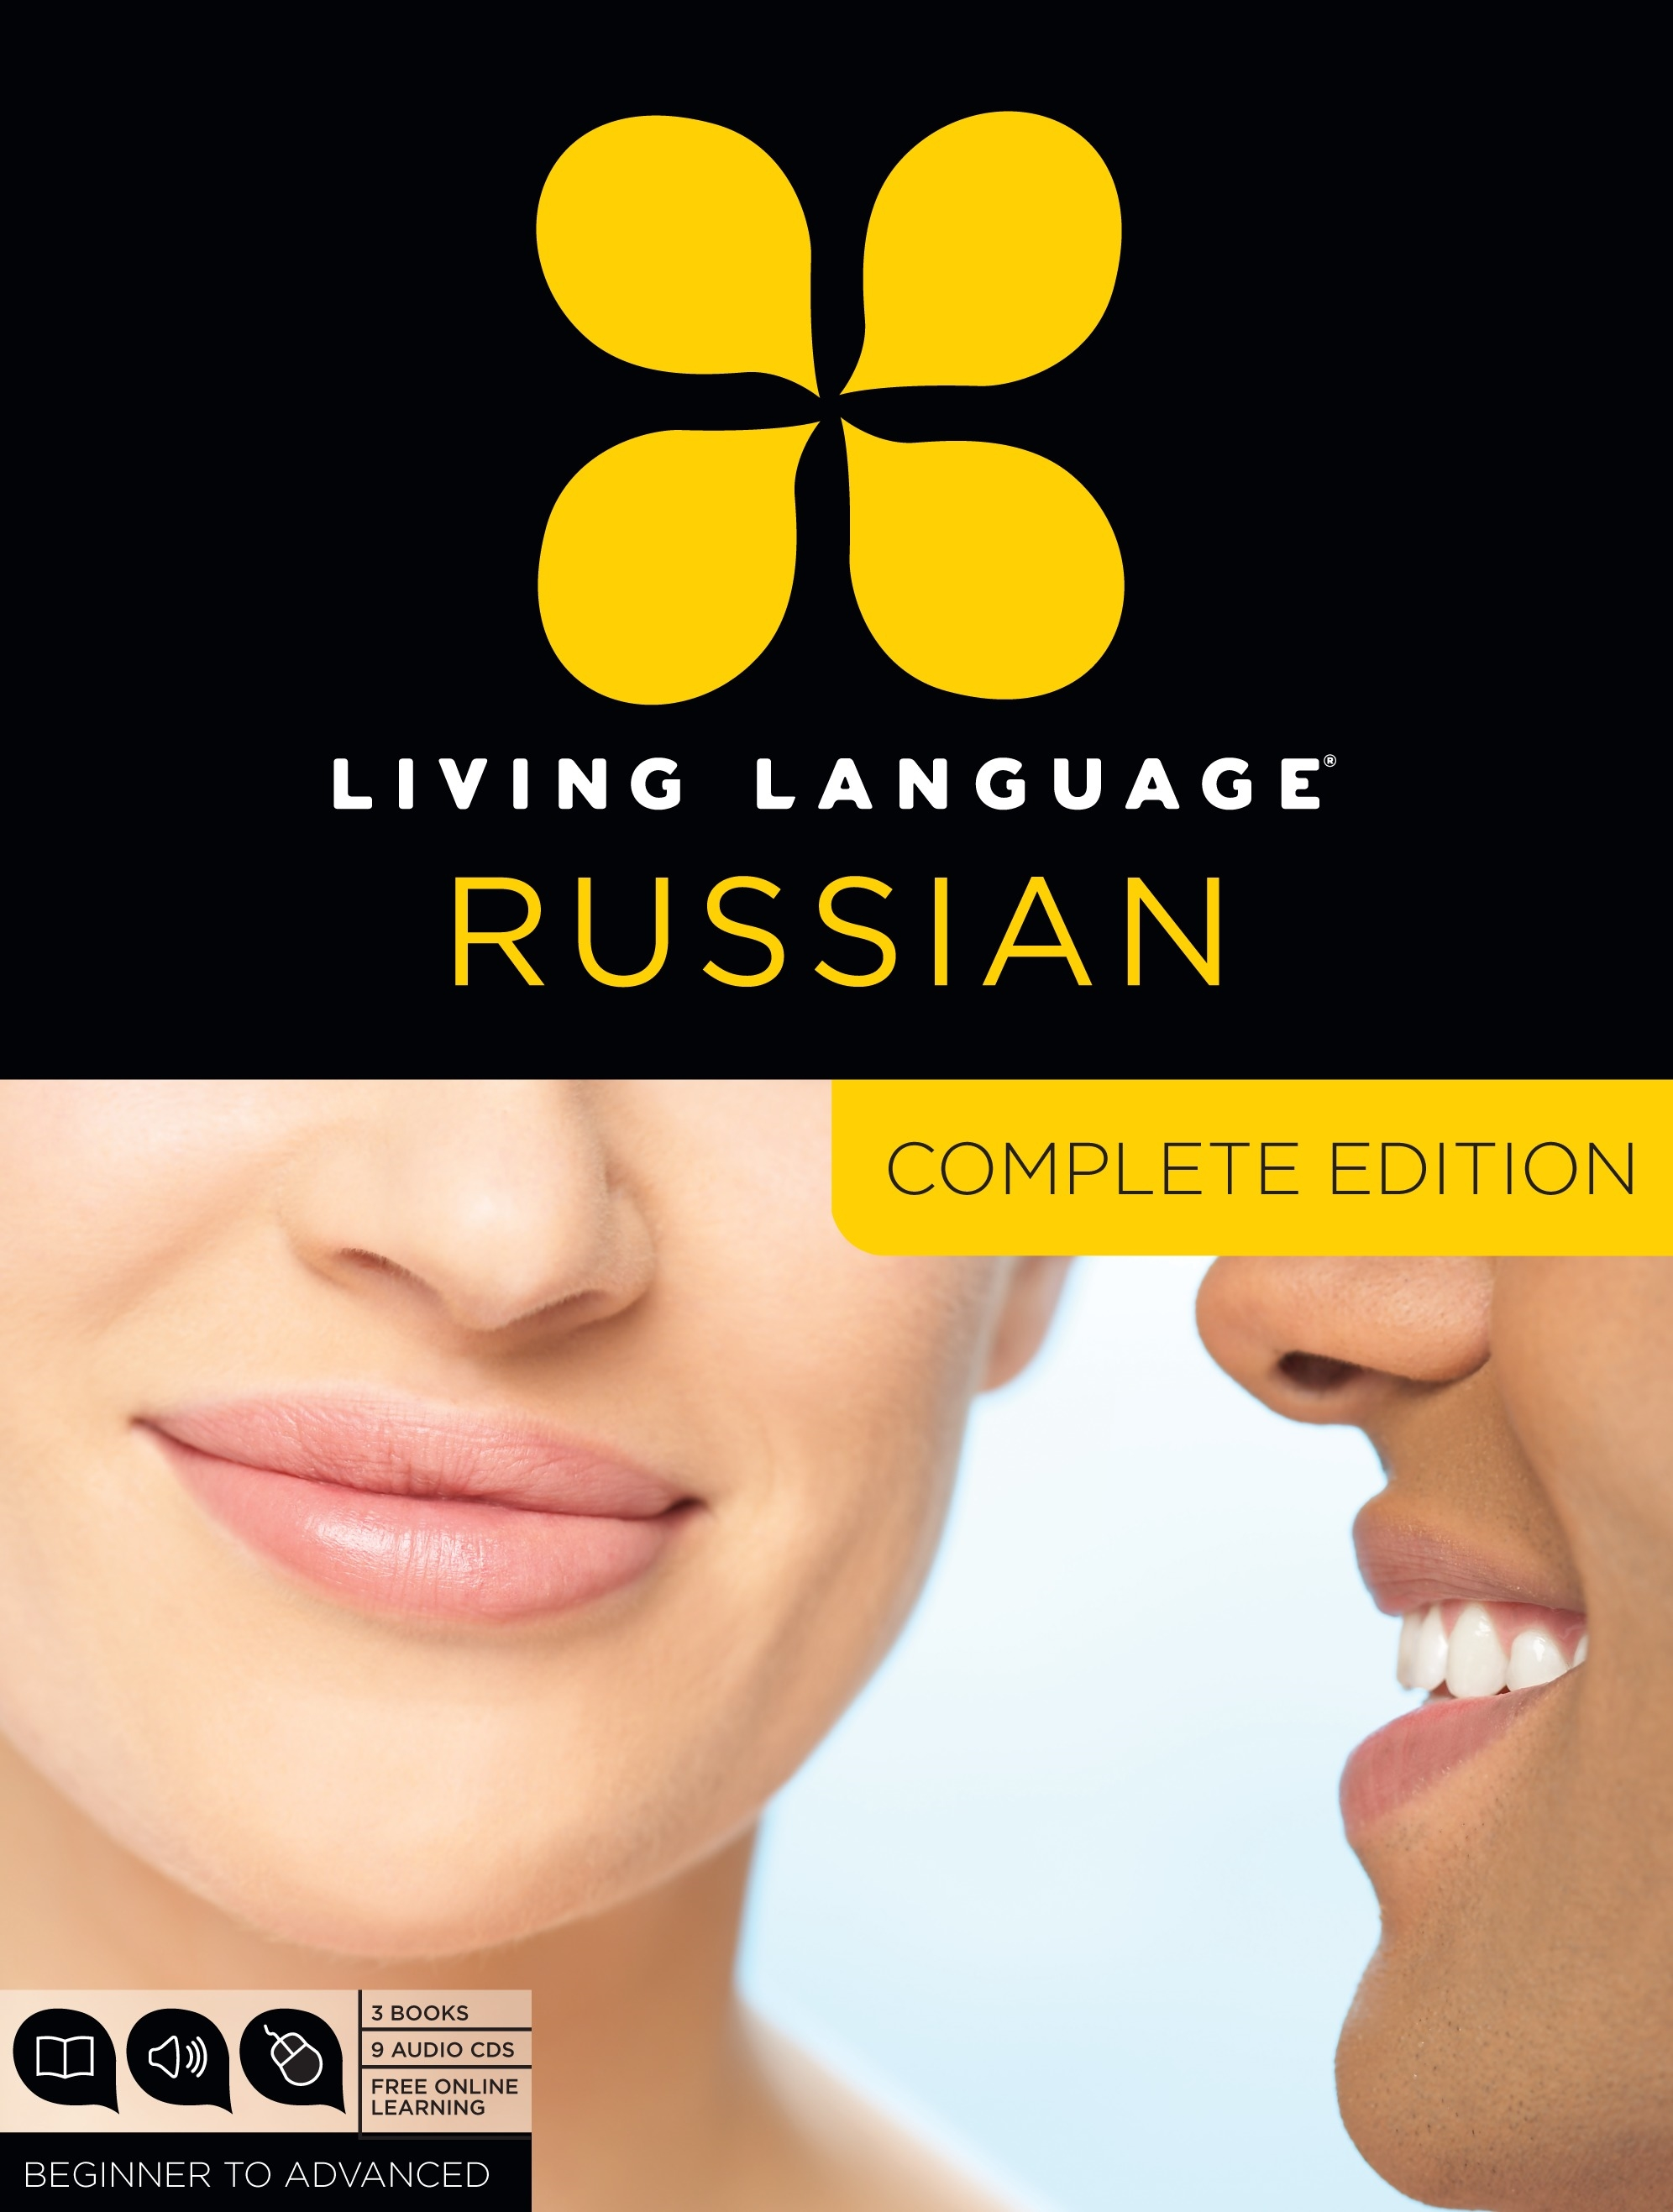 Living Language Russian, Complete Edition by Living Language, ISBN: 9780307972101